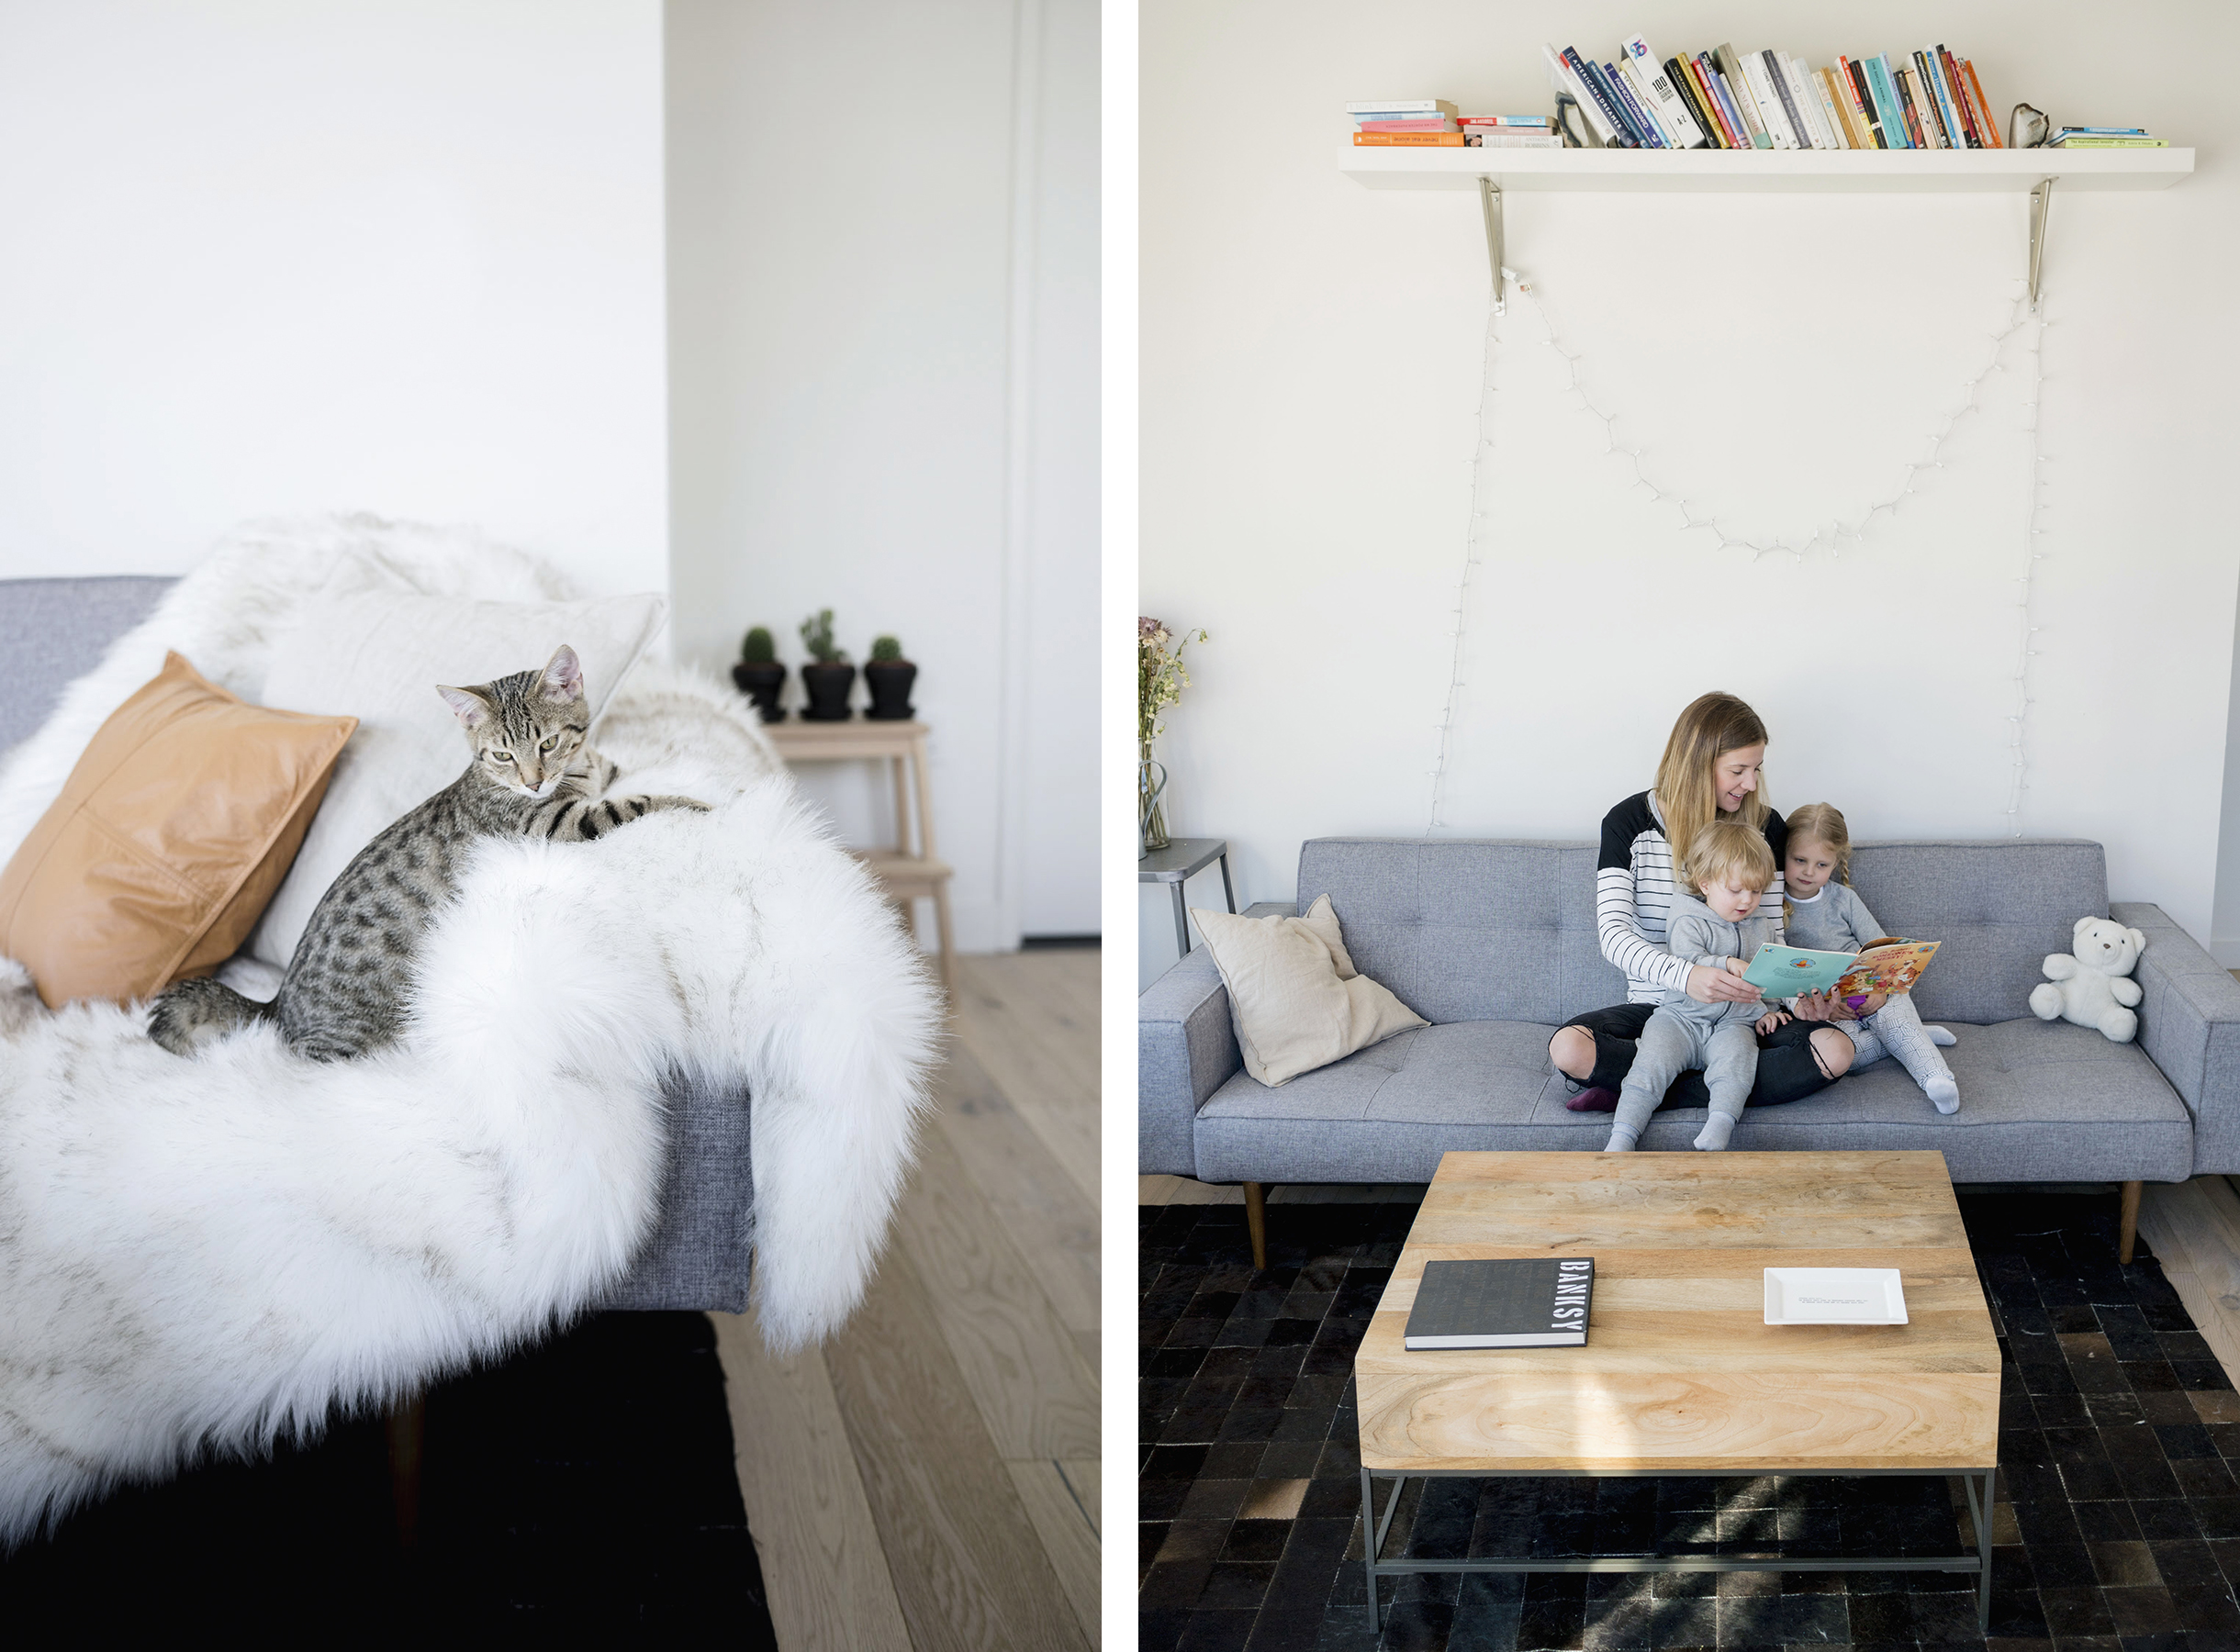 ... Scandinavian industrial interior in New York City | Happy Grey Lucky ... & A Scandinavian Industrial Interior in NYC | Happy Grey Lucky